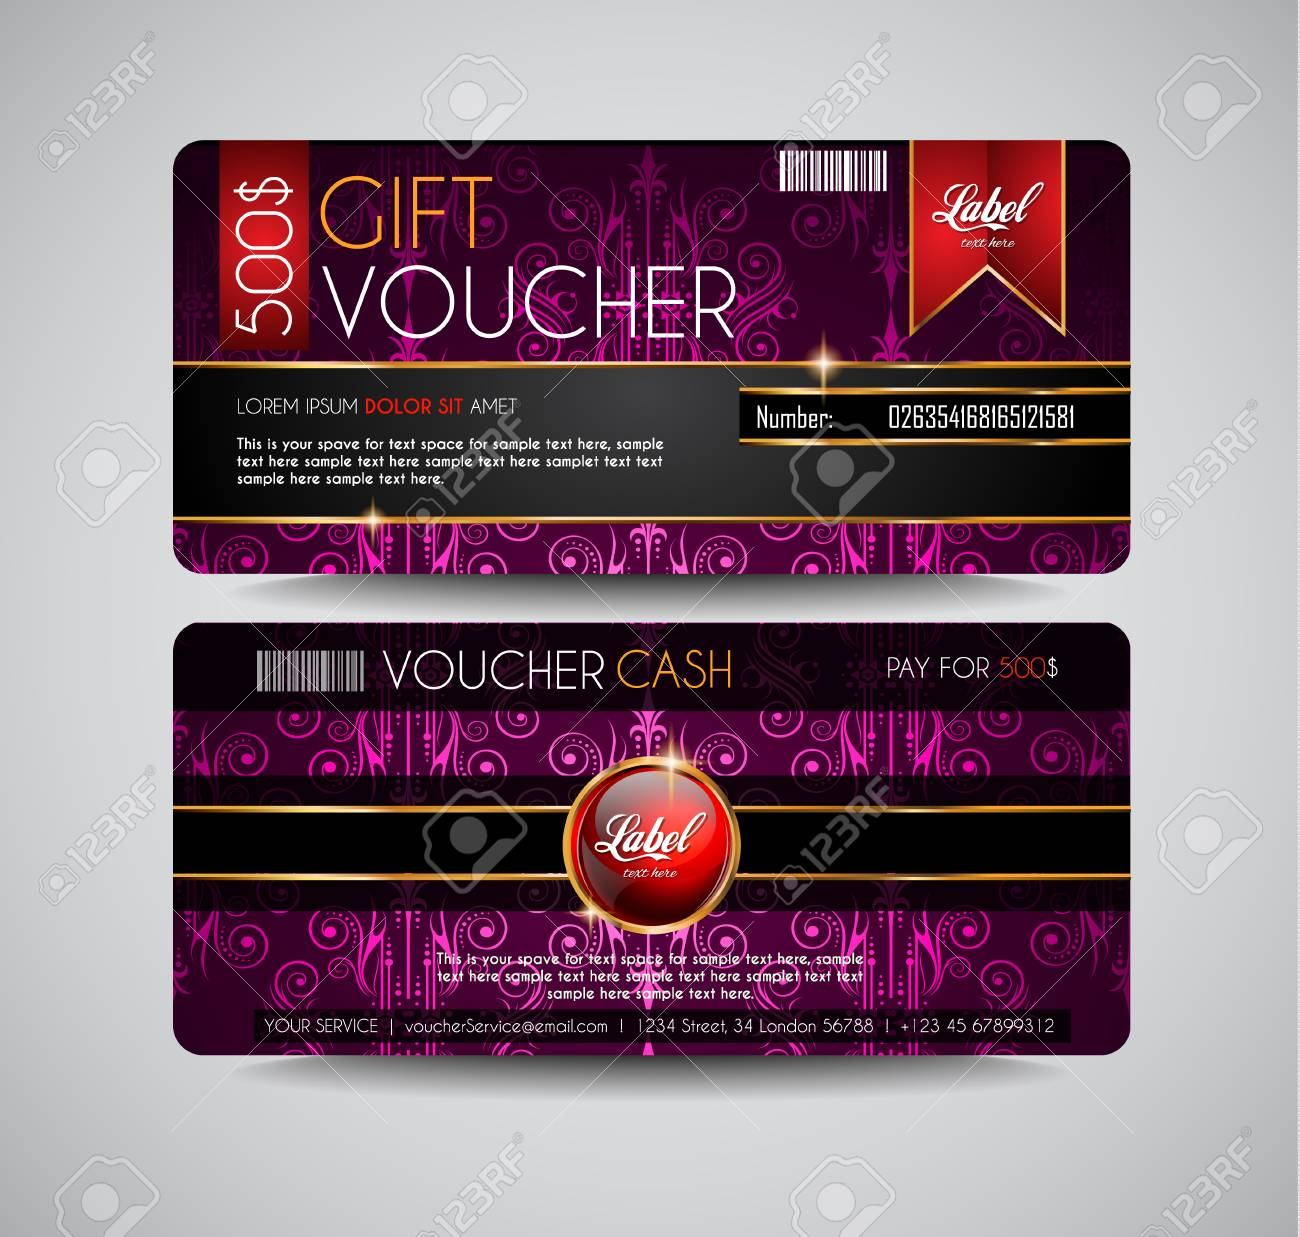 Voucher Gift Card Layout Template For Your Promotional Design ...